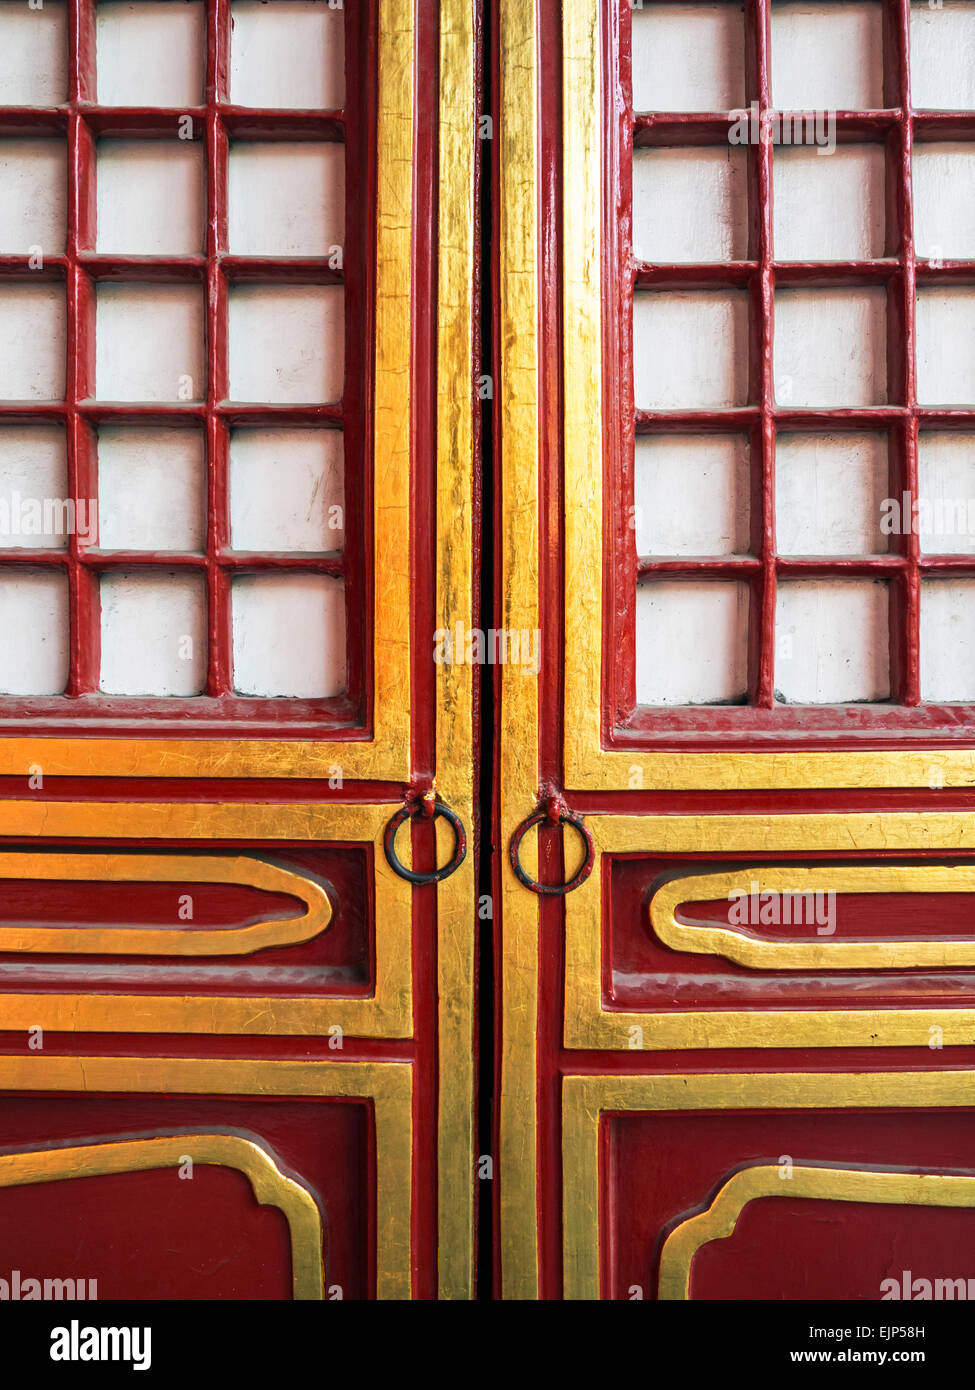 China, Beijing, Forbidden City, Hall of Supreme Harmony, Outer Court, doorway detail - Stock Image